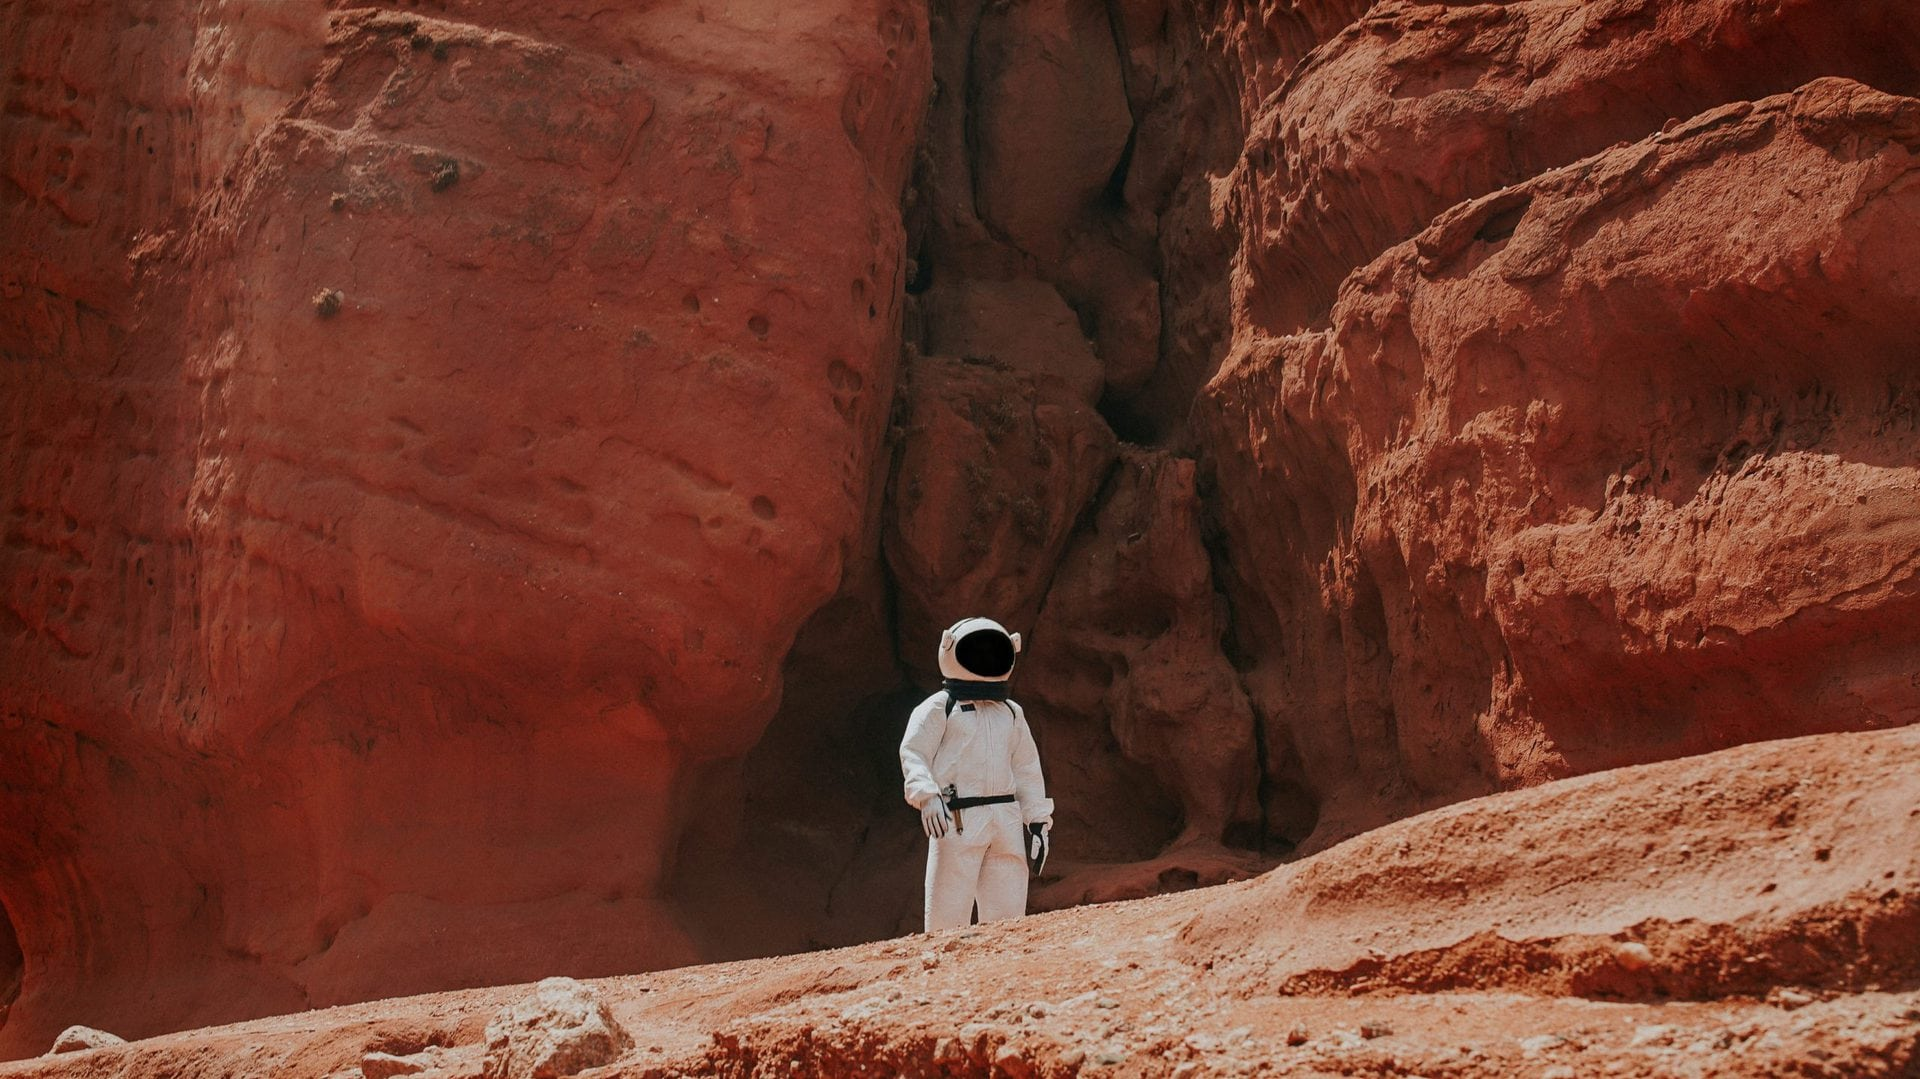 Why our future is not on Mars - as much I'm psyched to go there